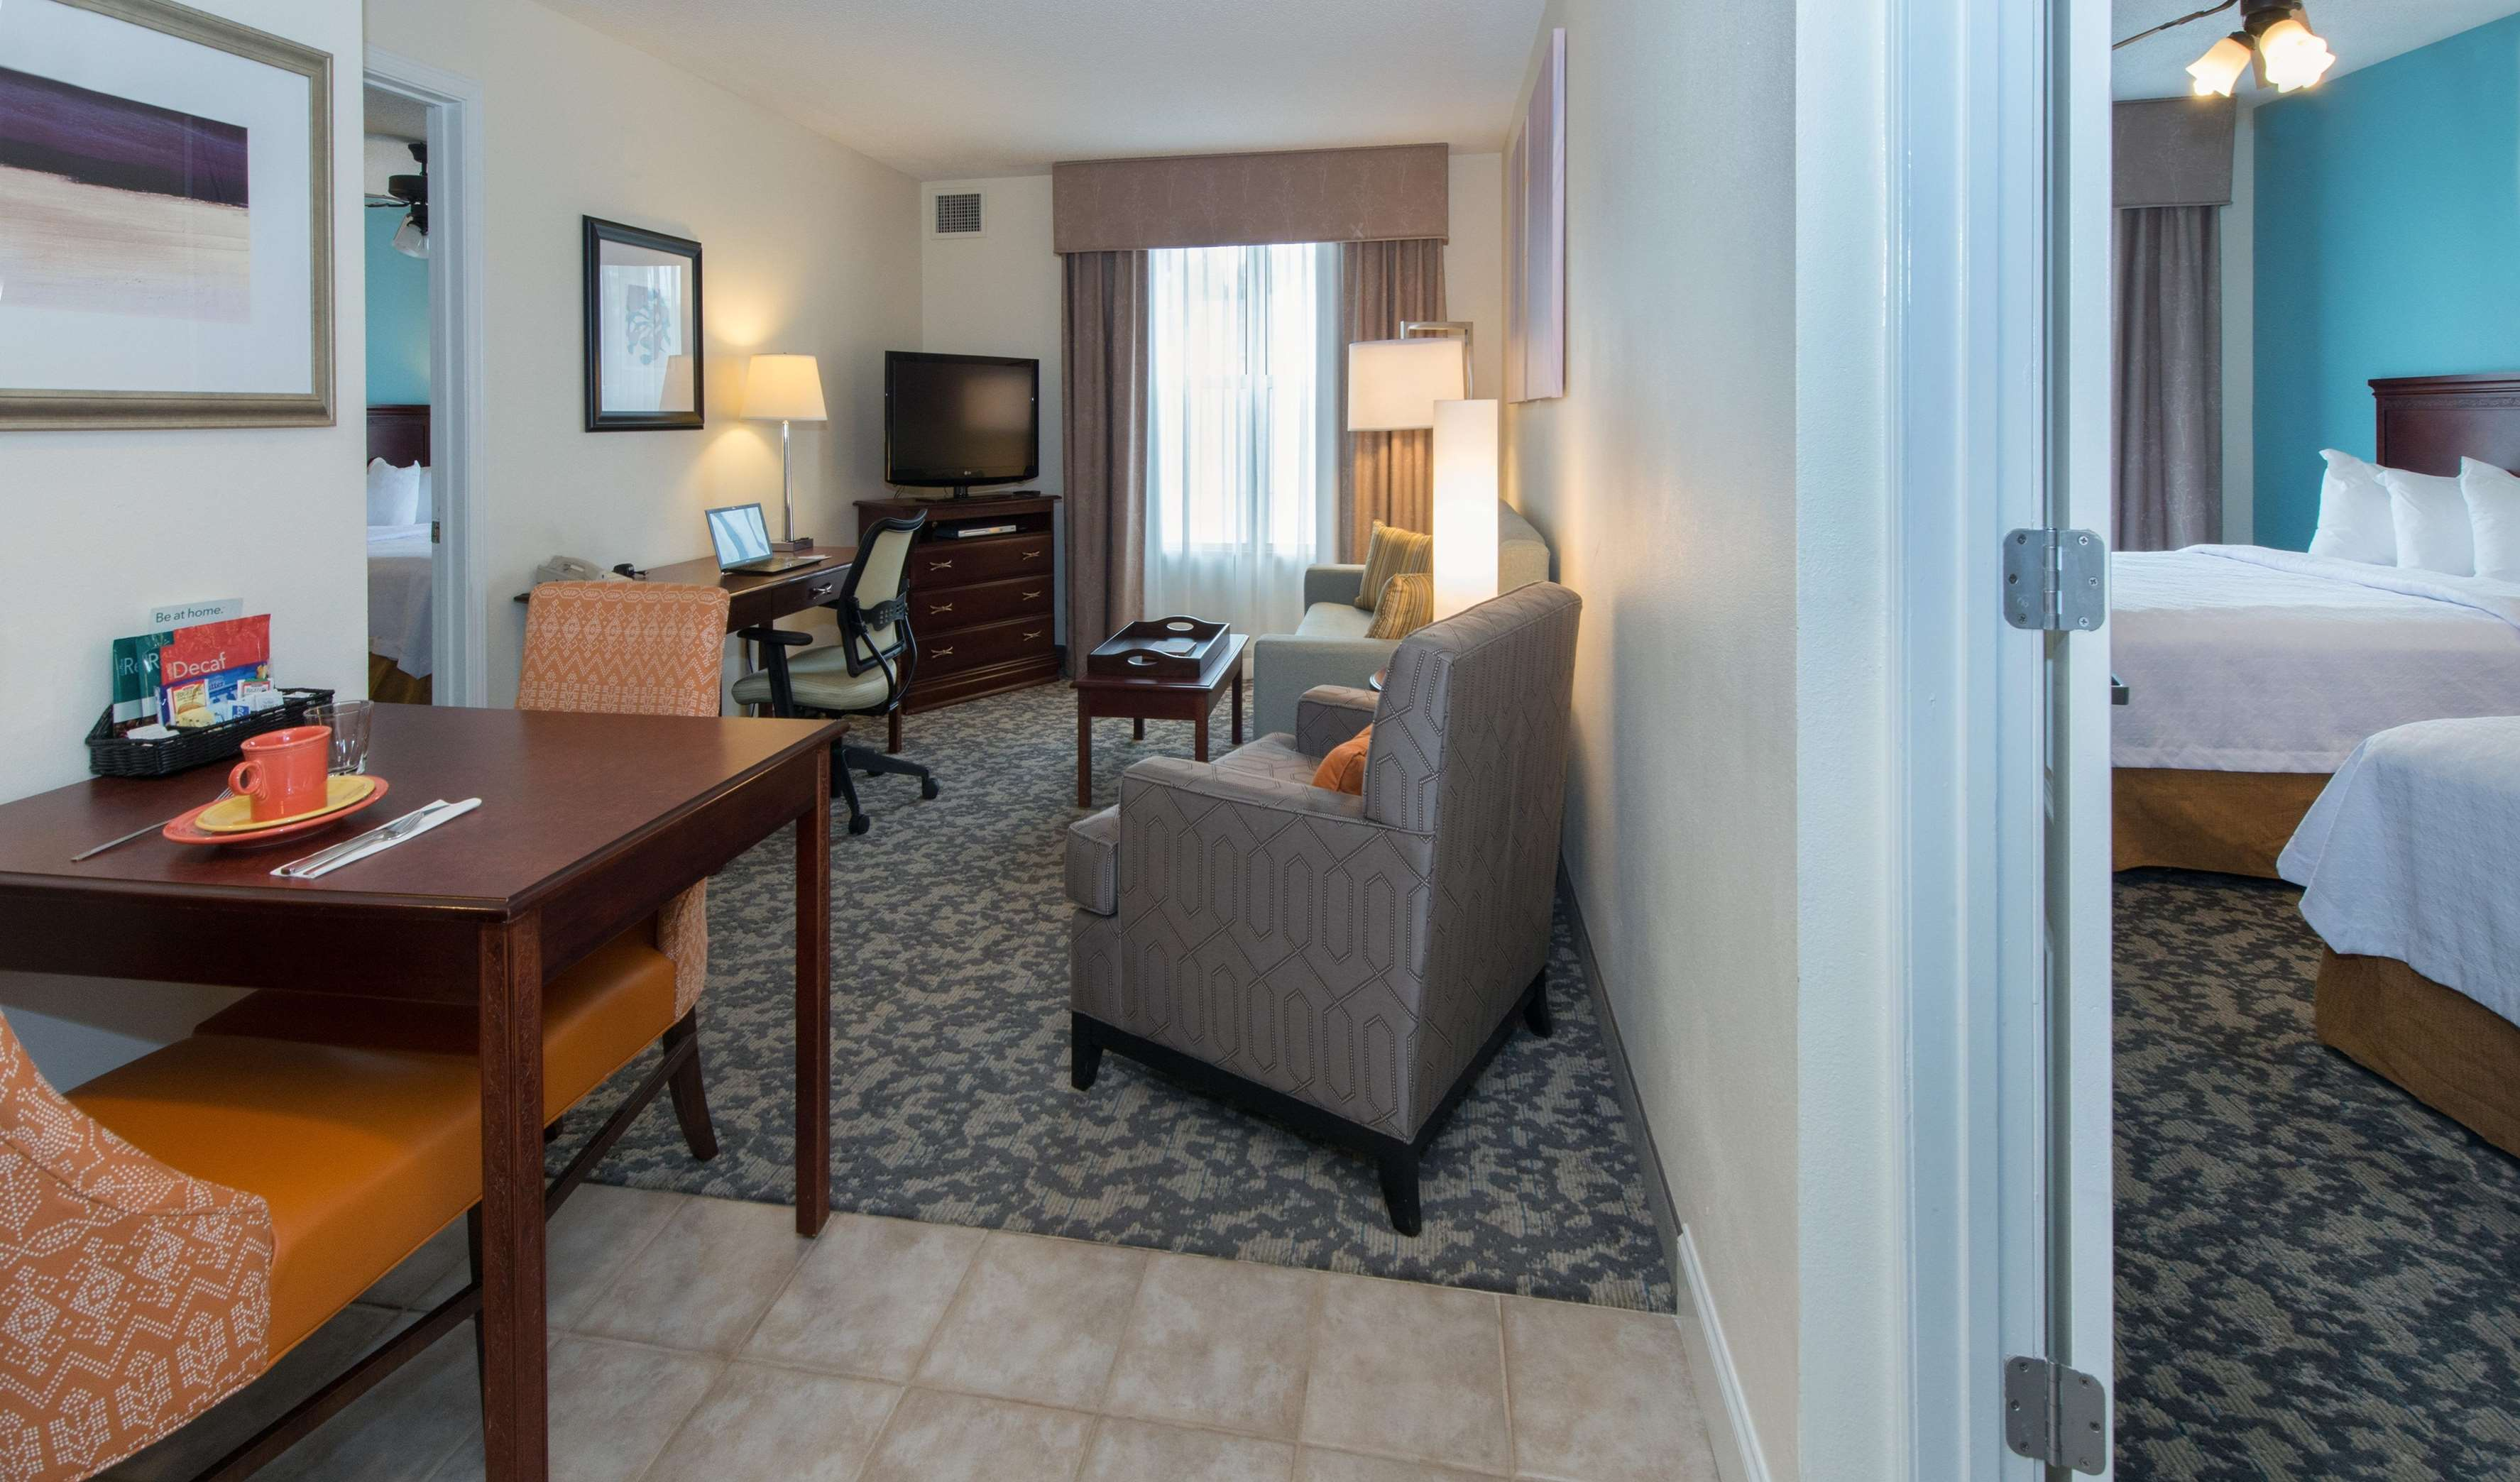 Homewood Suites by Hilton Montgomery image 24